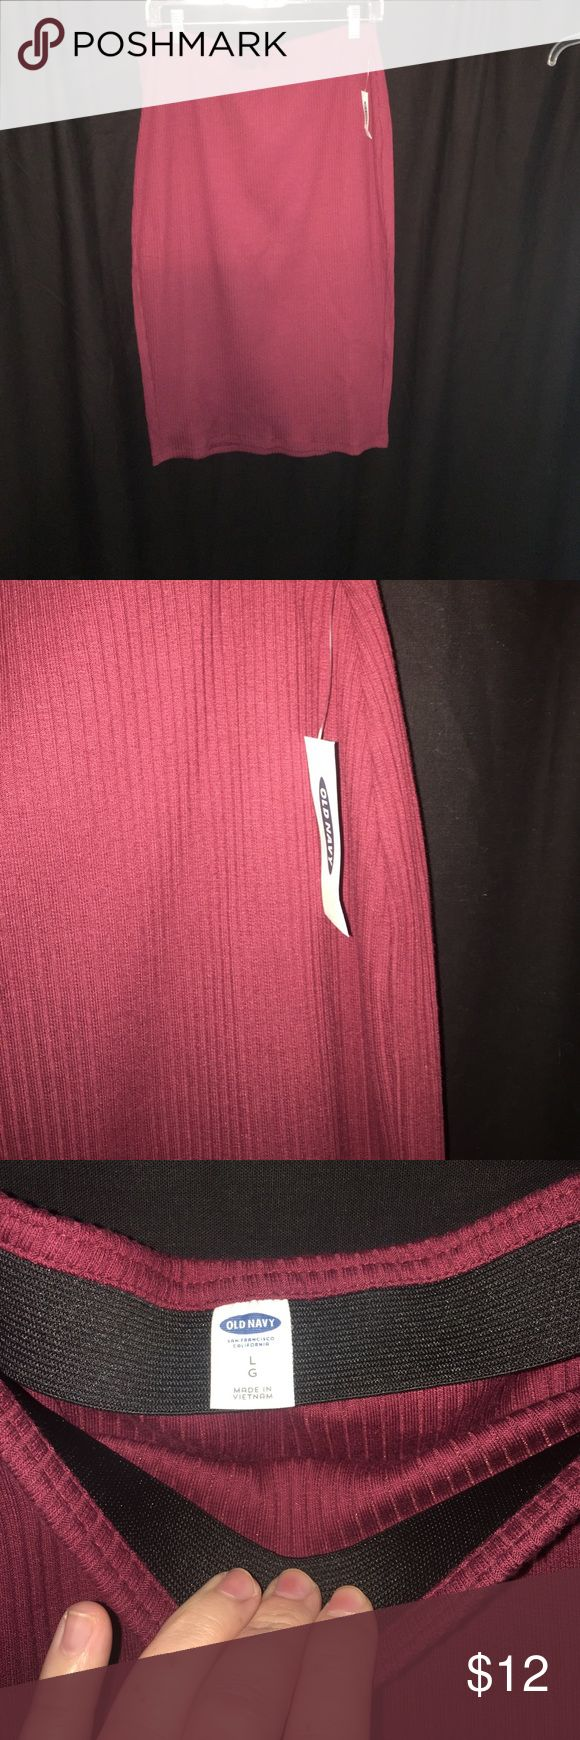 Maroon/wine ribbed Old Navy skirt Very pencil/bodycon skirt. Ribbed. New with tags, only tried on. Can dress up or down! Is a maroon/red wine color. More photos available upon request! Old Navy Skirts Pencil